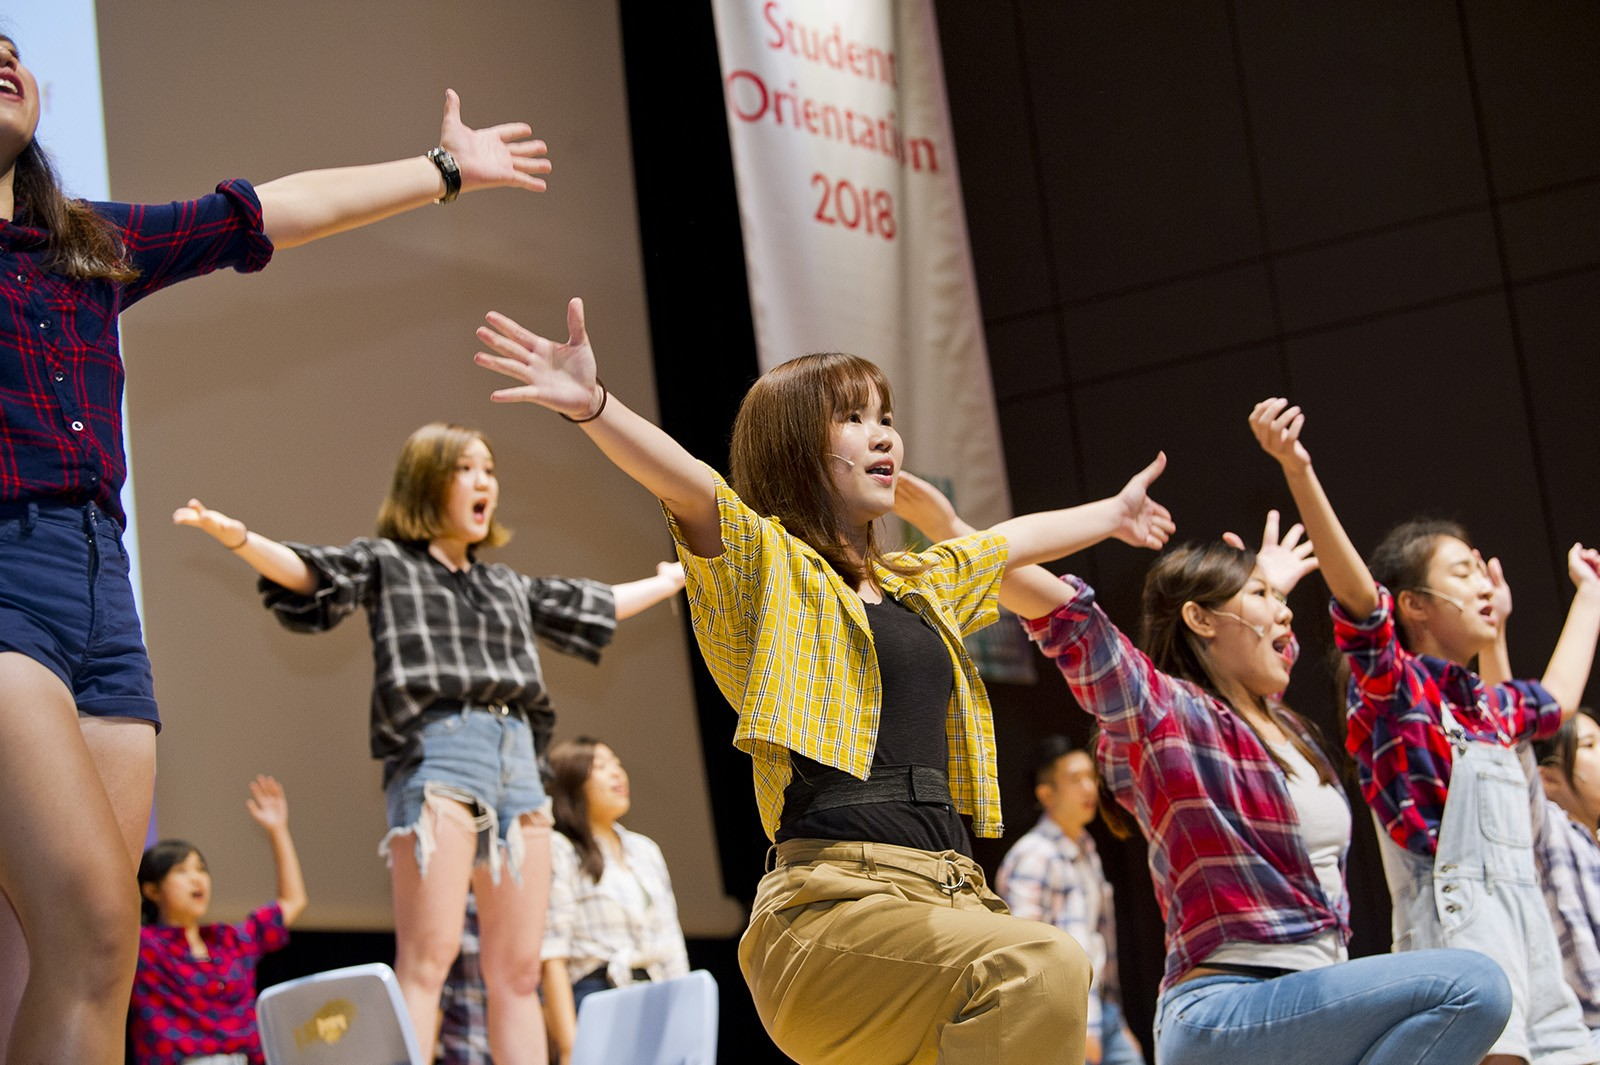 CityU singers and dancers liven up proceedings with excerpts from the musical Footloose.